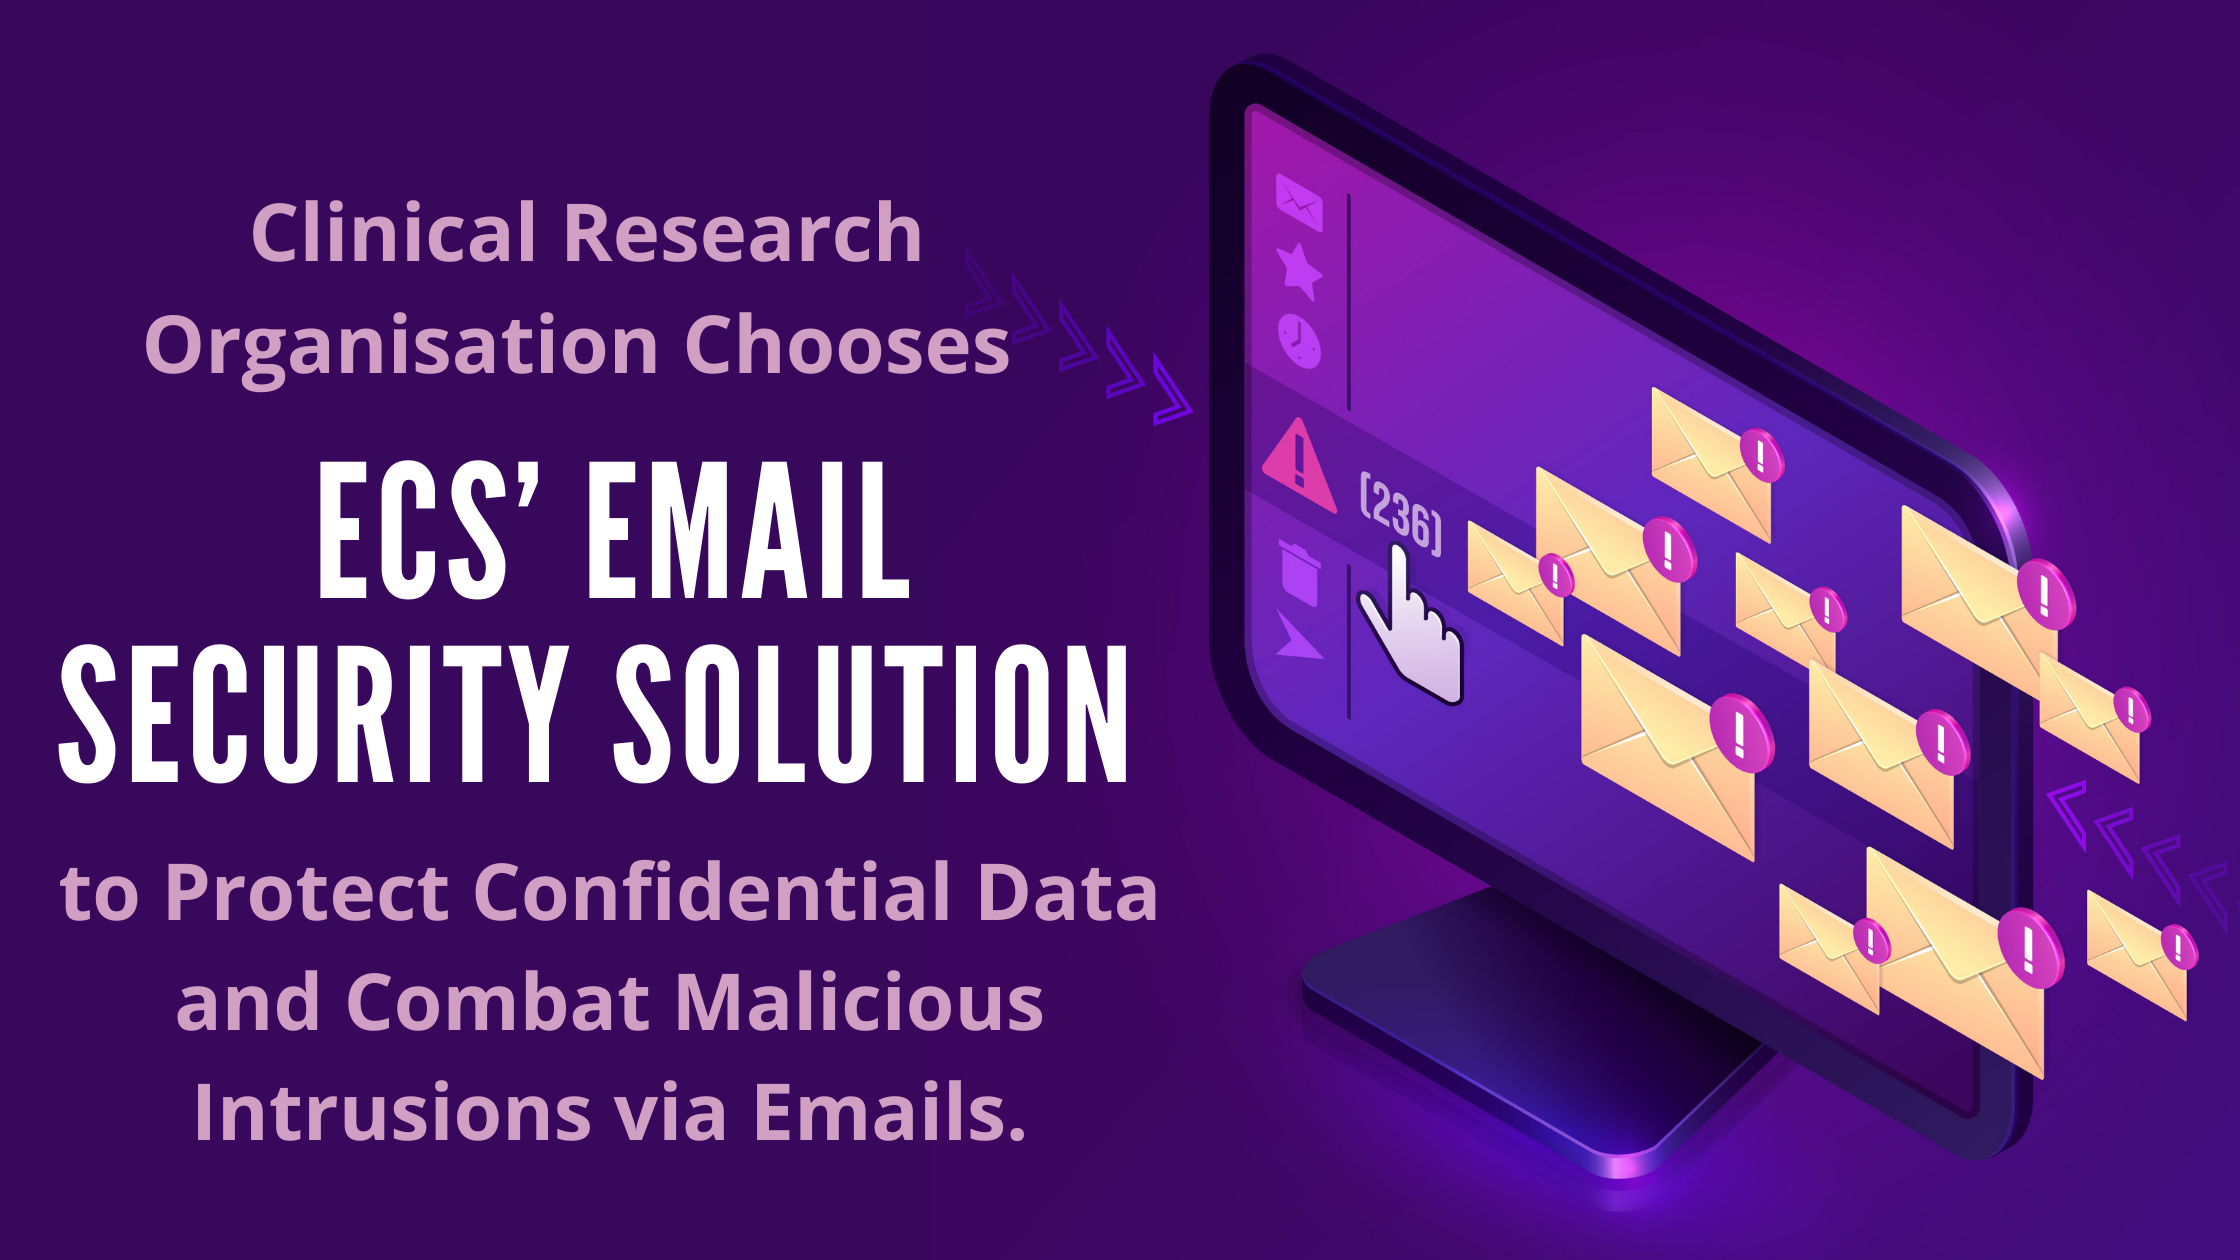 Clinical Research Organisation Chooses ECS' Email Security Solution to Protect Confidential Data and Combat Malicious Intrusions via Emails.